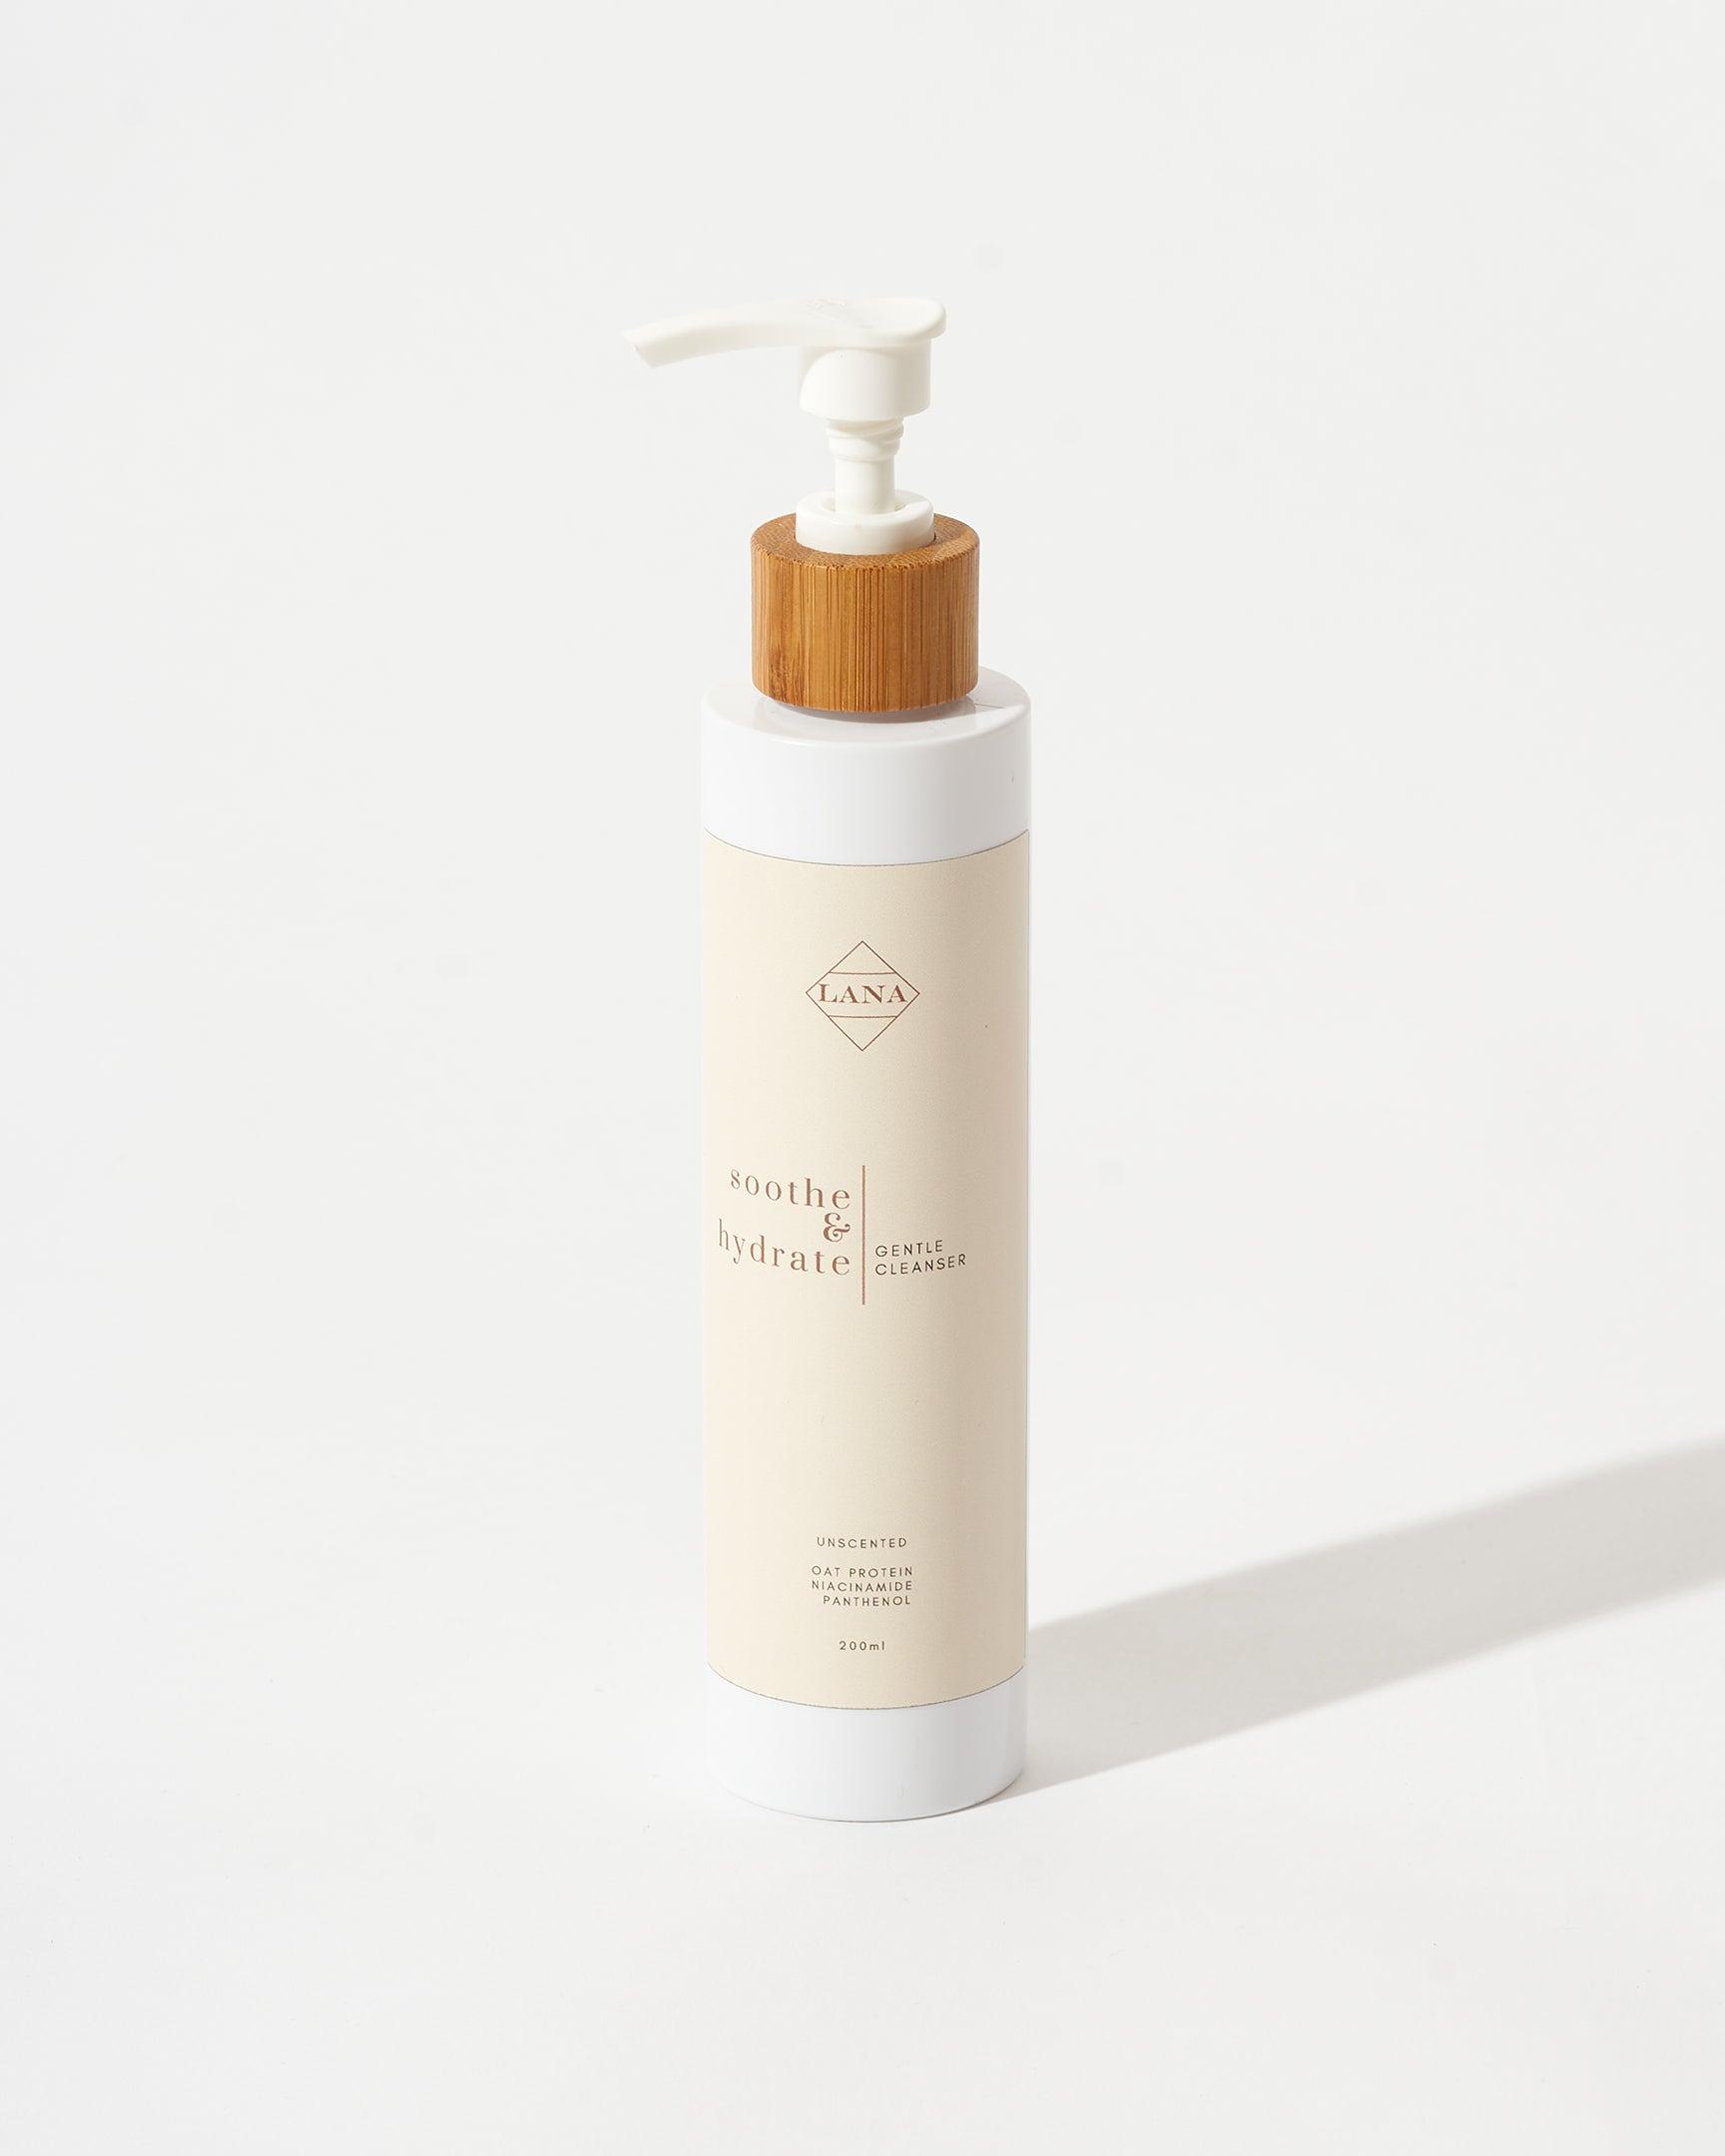 Soothe & Hydrate Gentle Cleanser